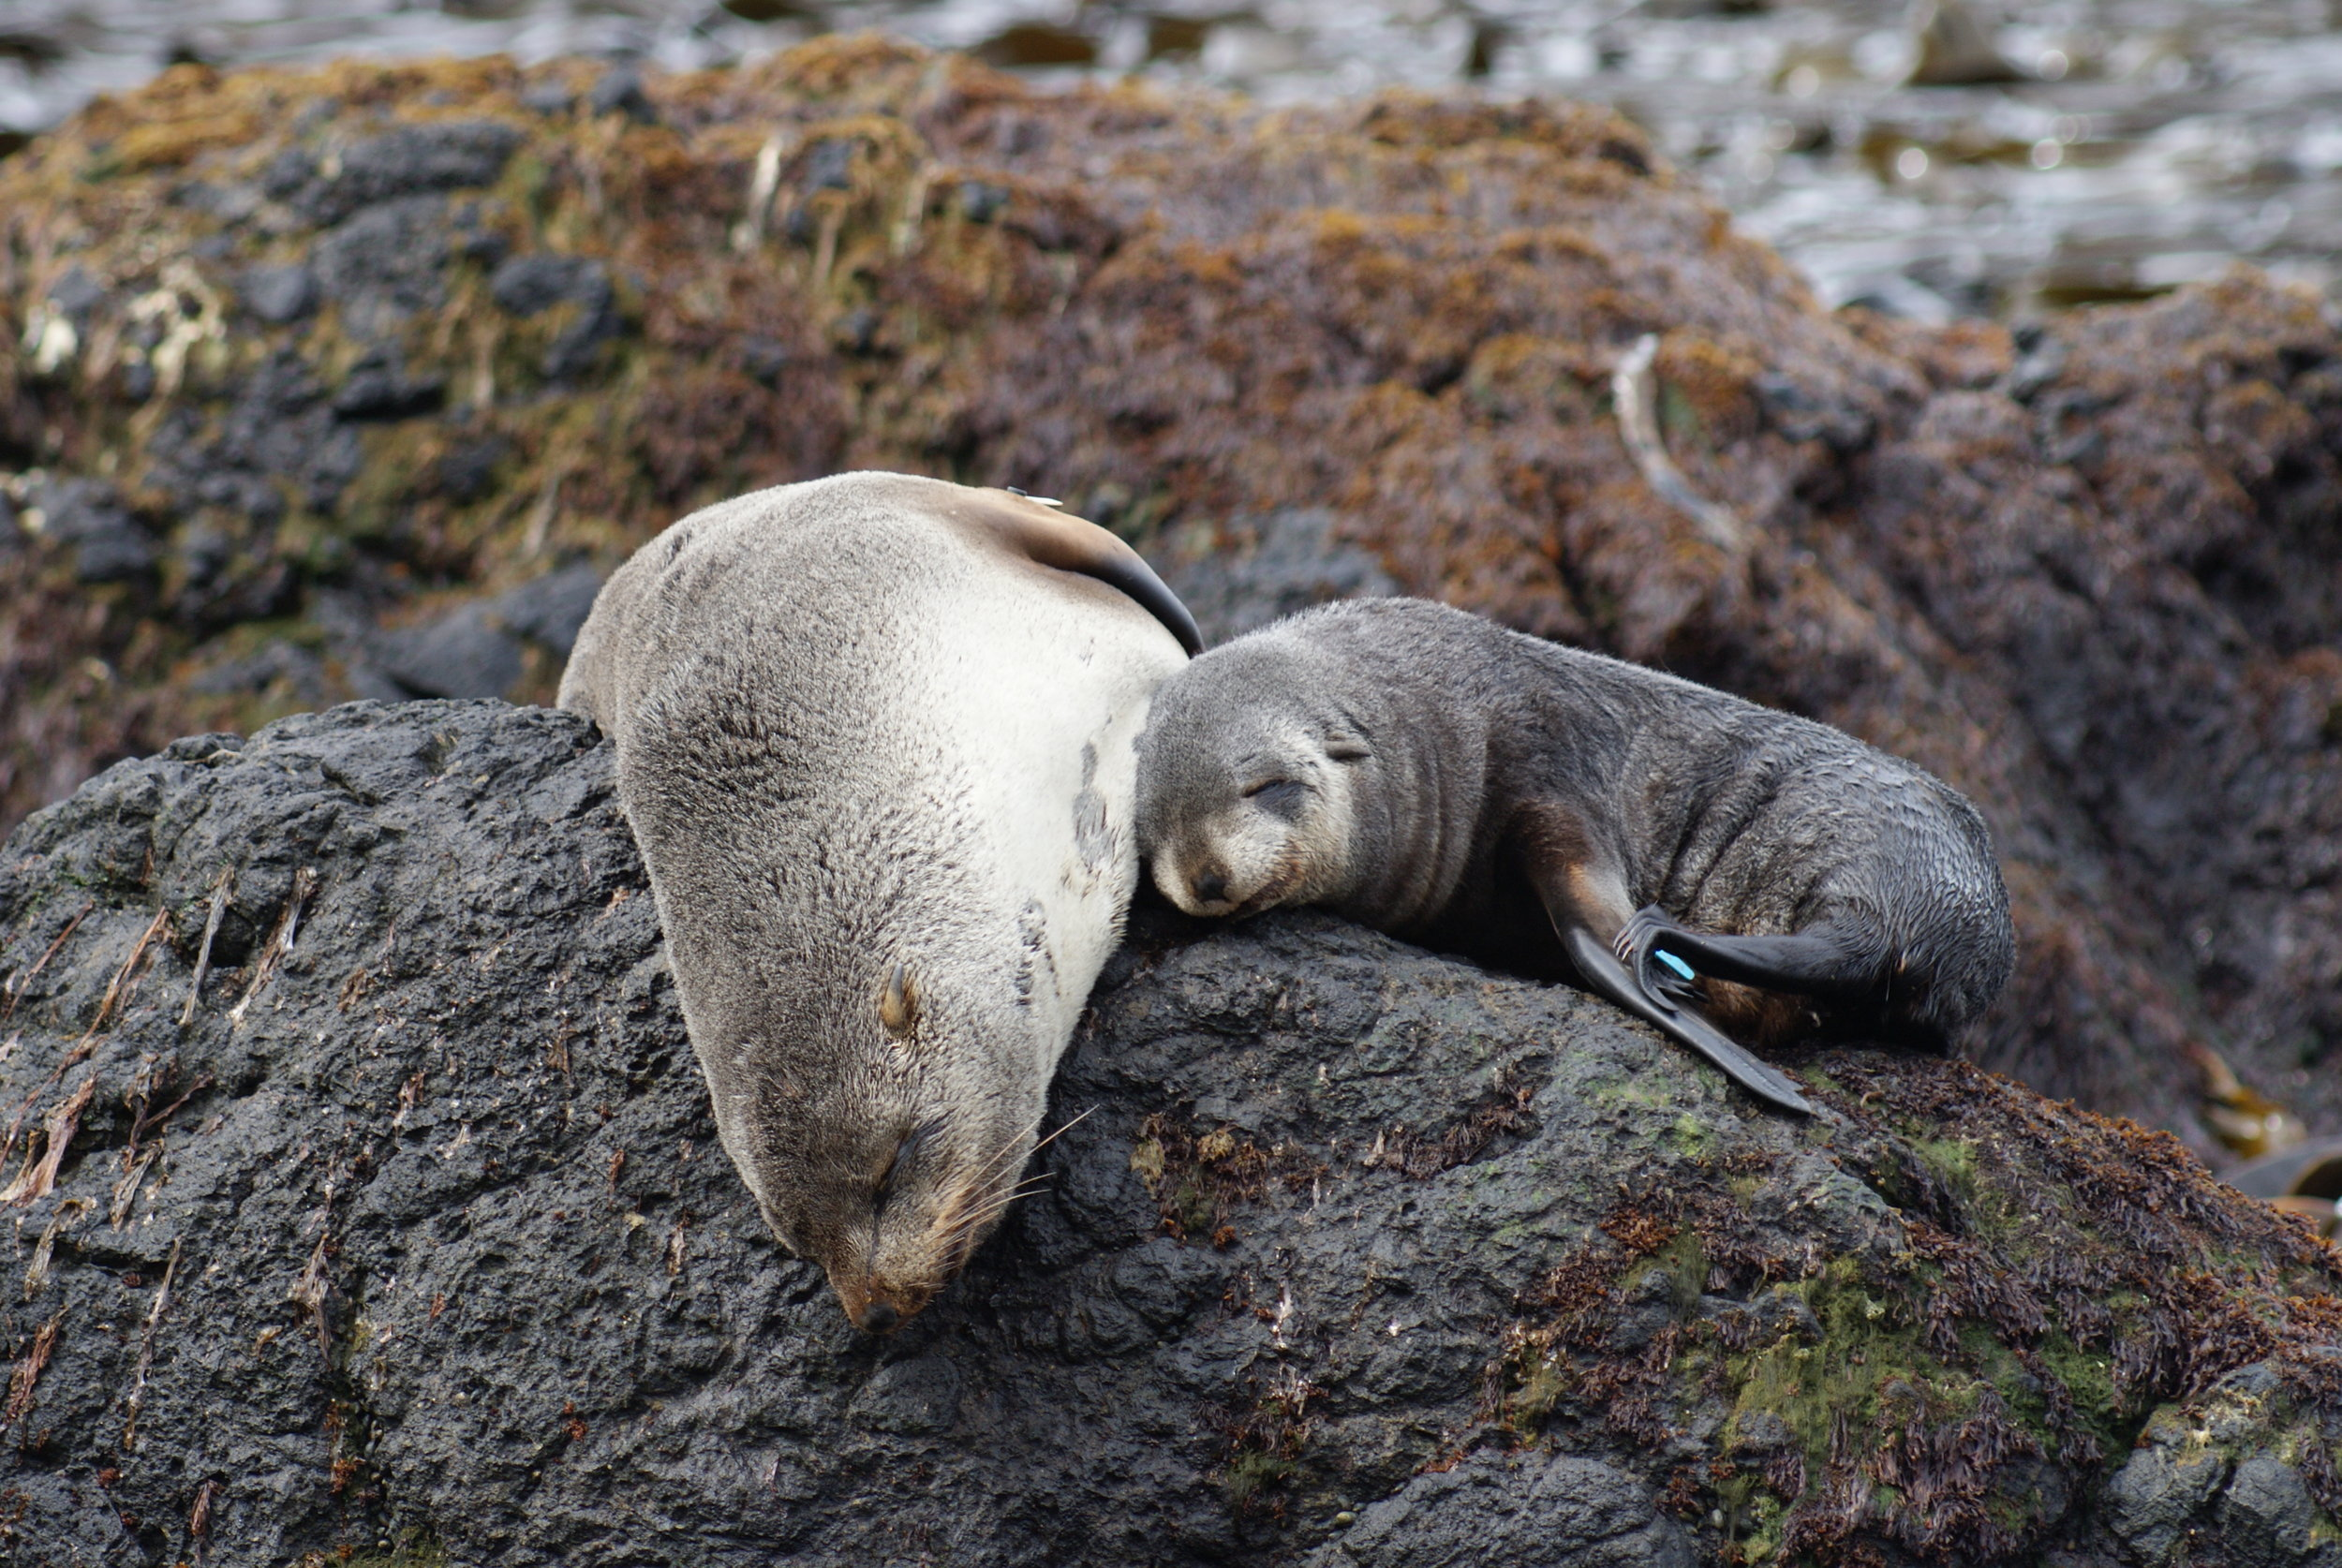 Subantarctic fur seal (Arctocephalus tropicalis) mum and pup taking in some sun. Photo by Josie van Dorst